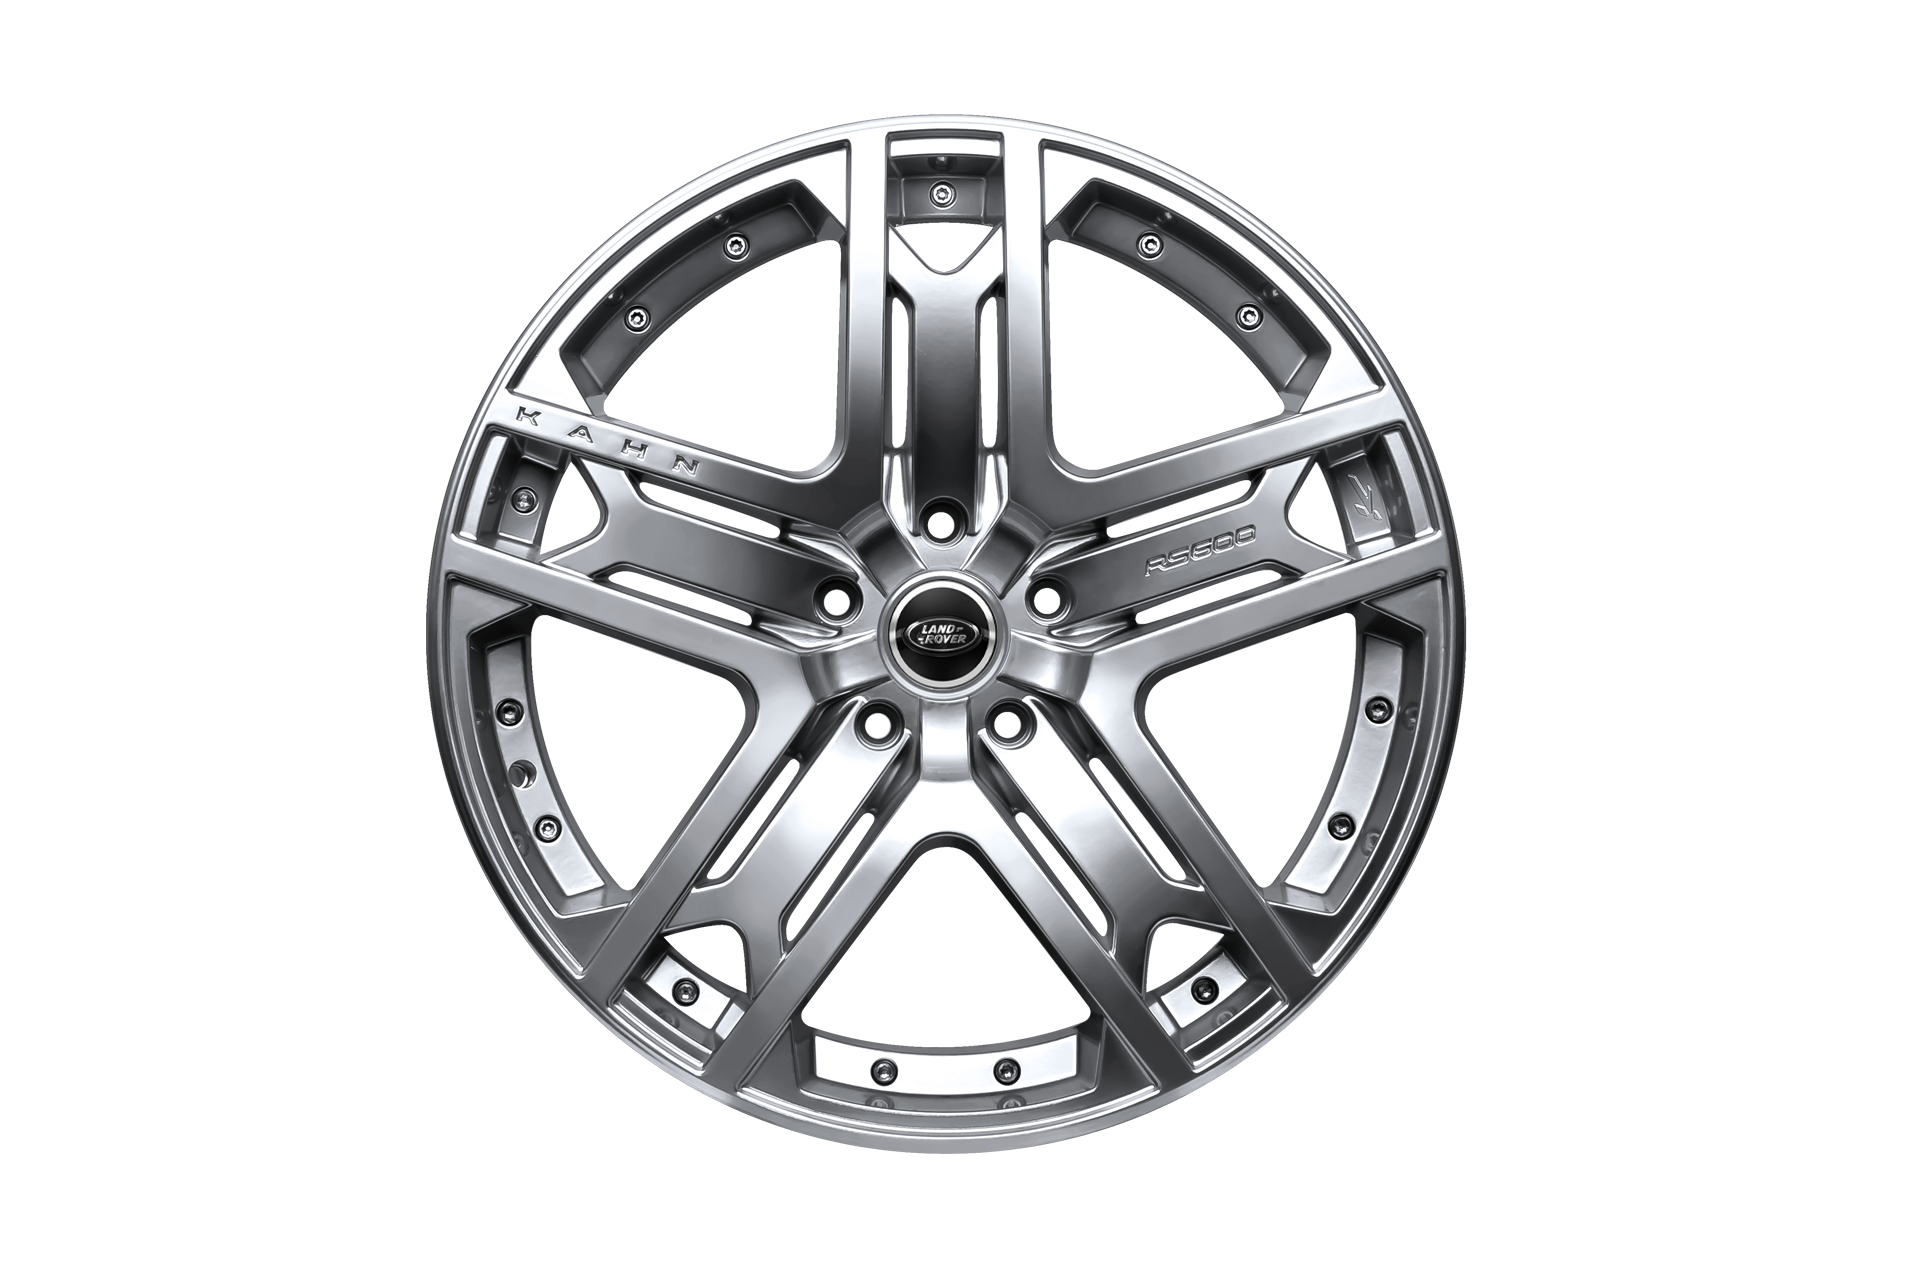 Land Rover Discovery (2004-2016) Rs600 Light Alloy Wheels by Kahn - Image 3877